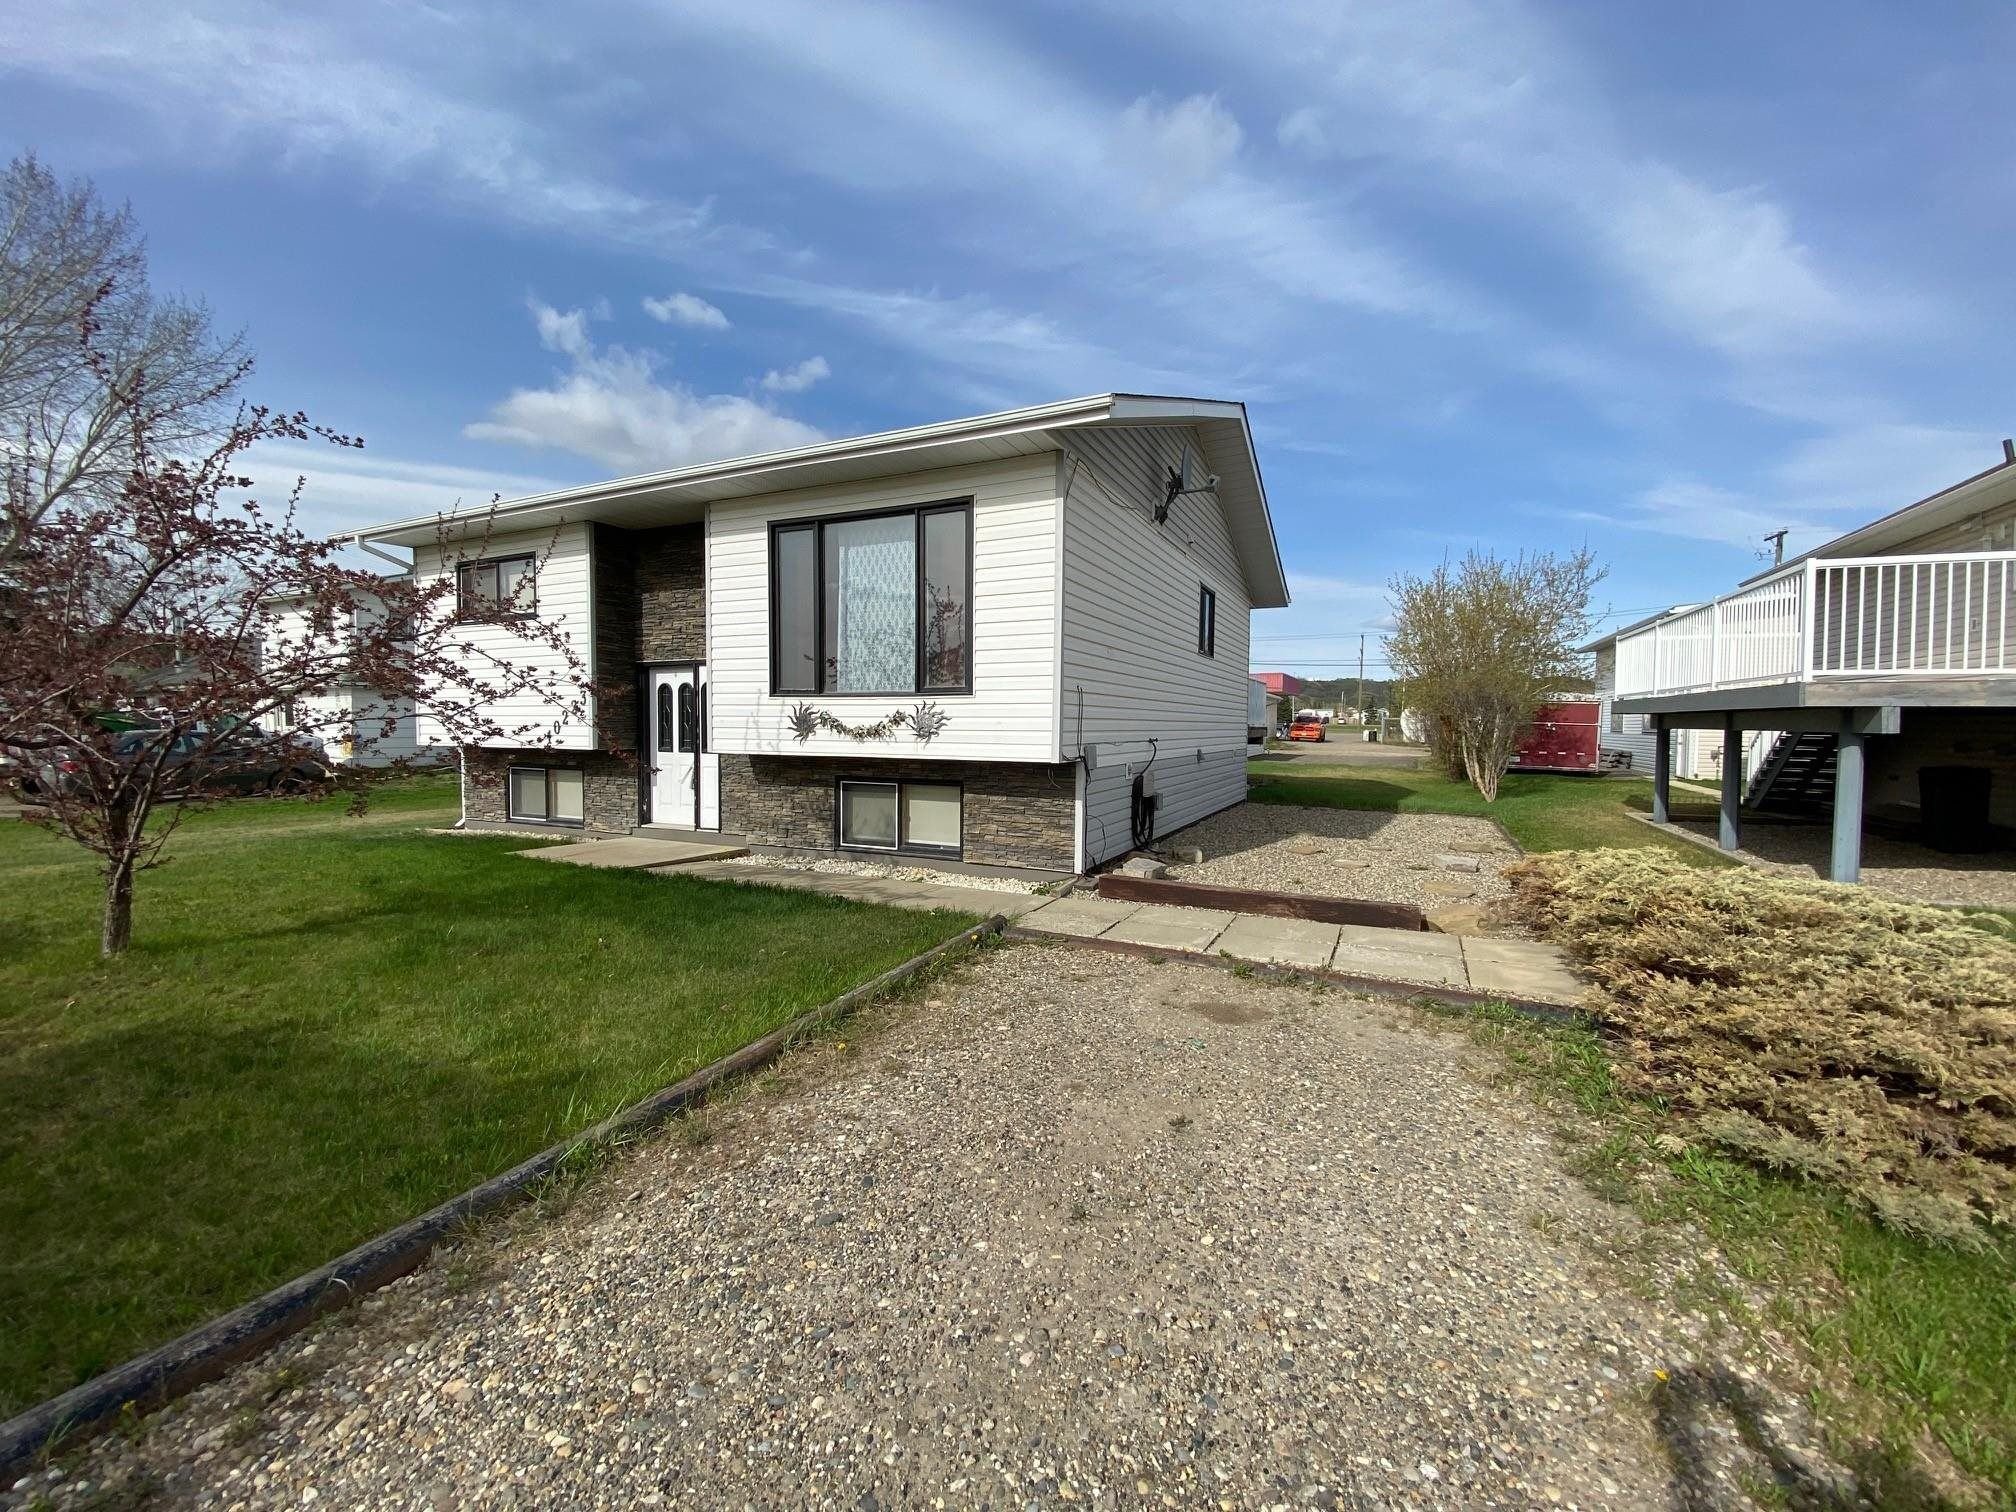 Photo 1: Photos: 10223 101 Street: Taylor House for sale (Fort St. John (Zone 60))  : MLS®# R2610570